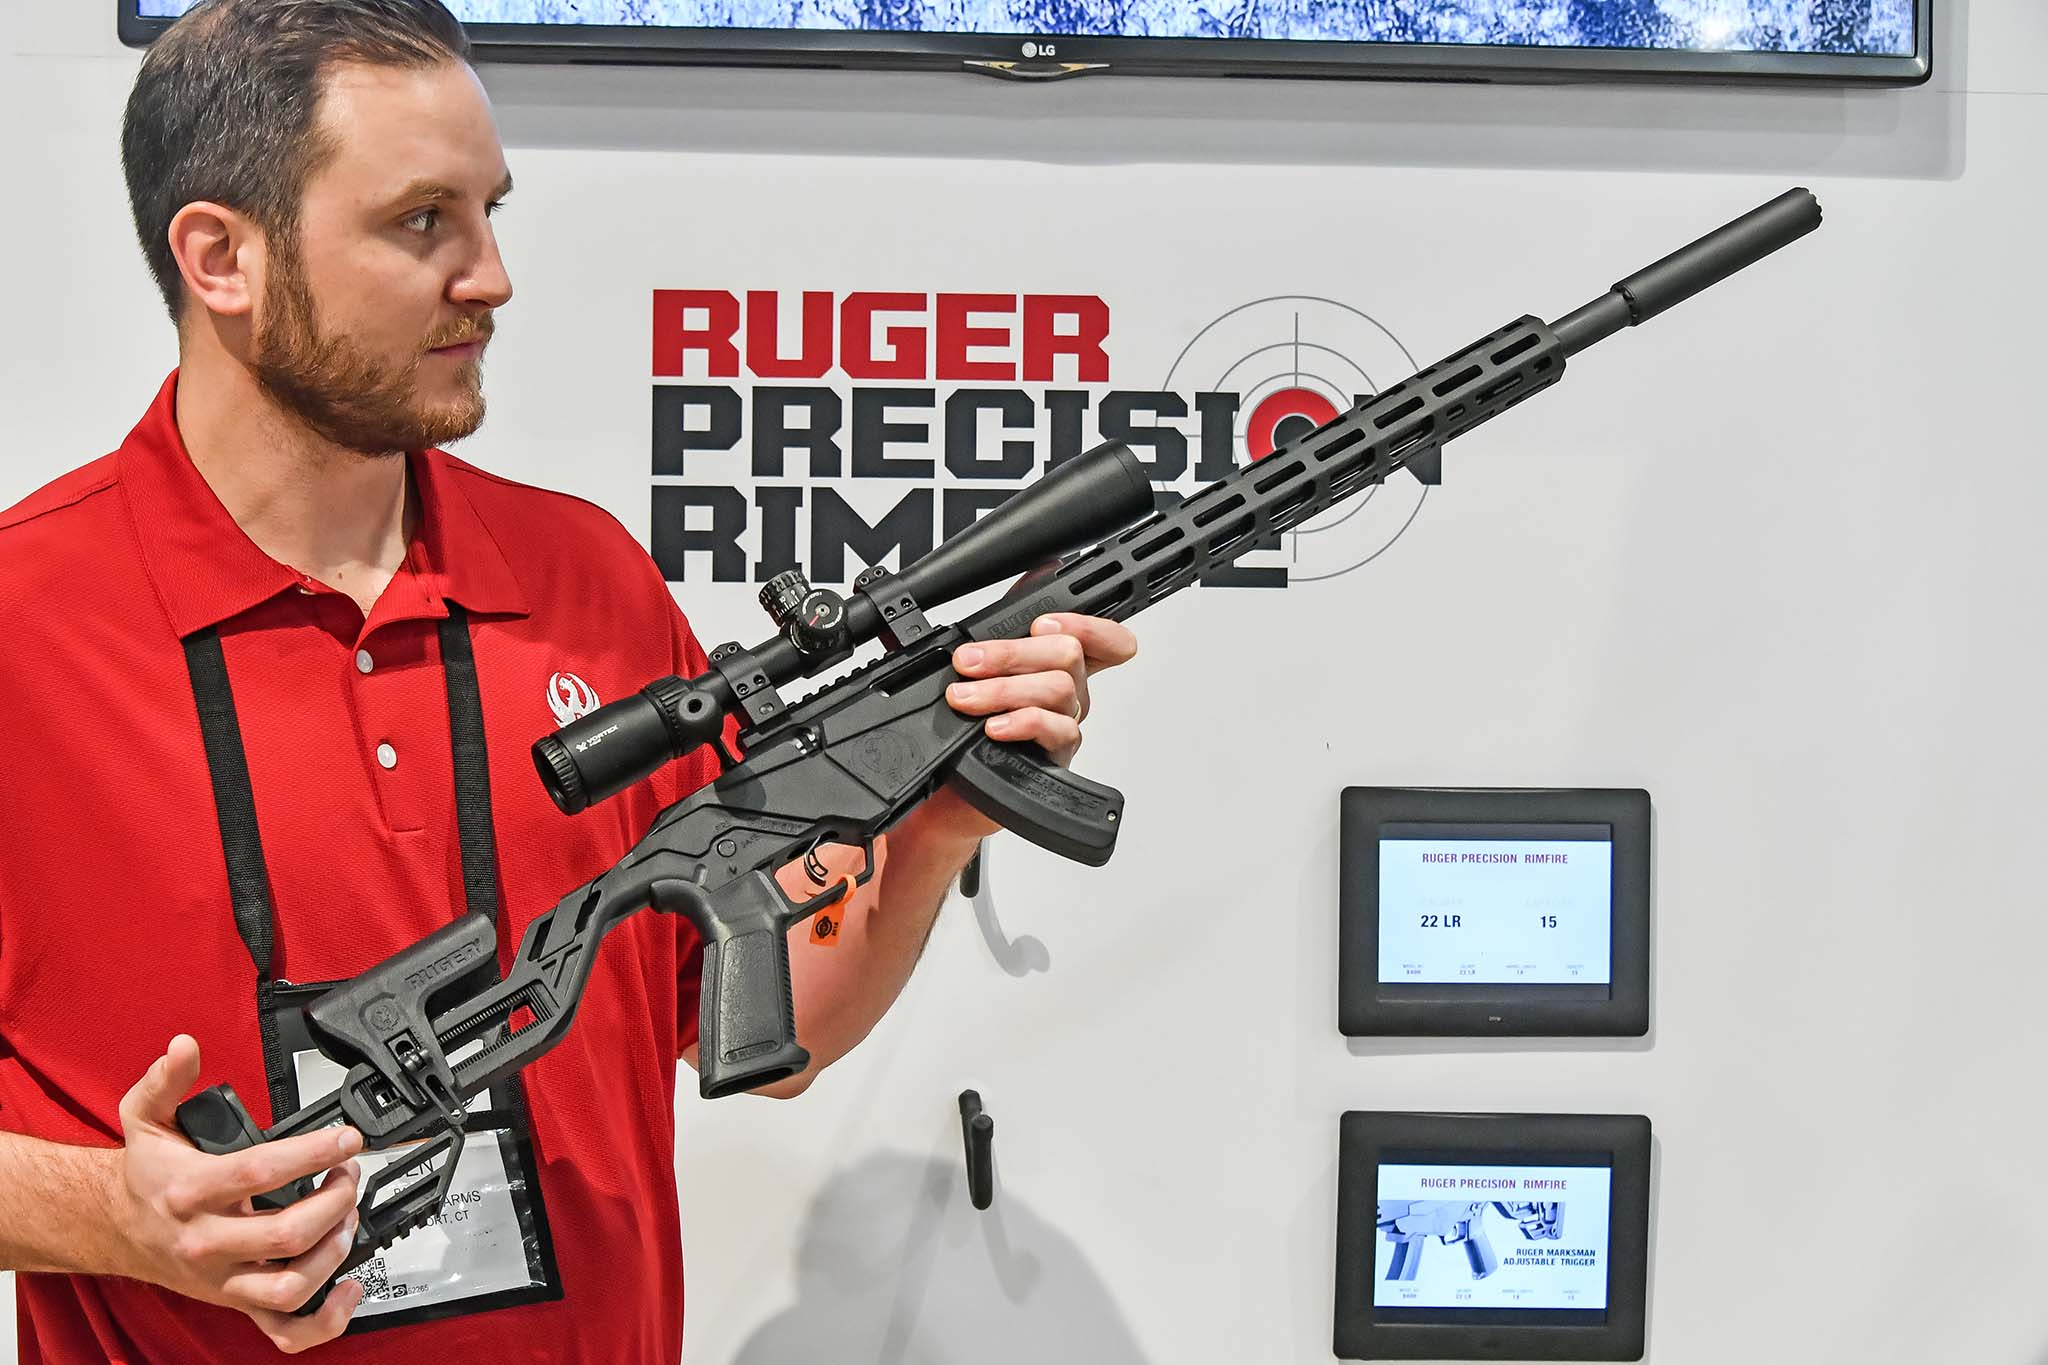 The new Ruger .22 LR  Precision Rimfire Rifle